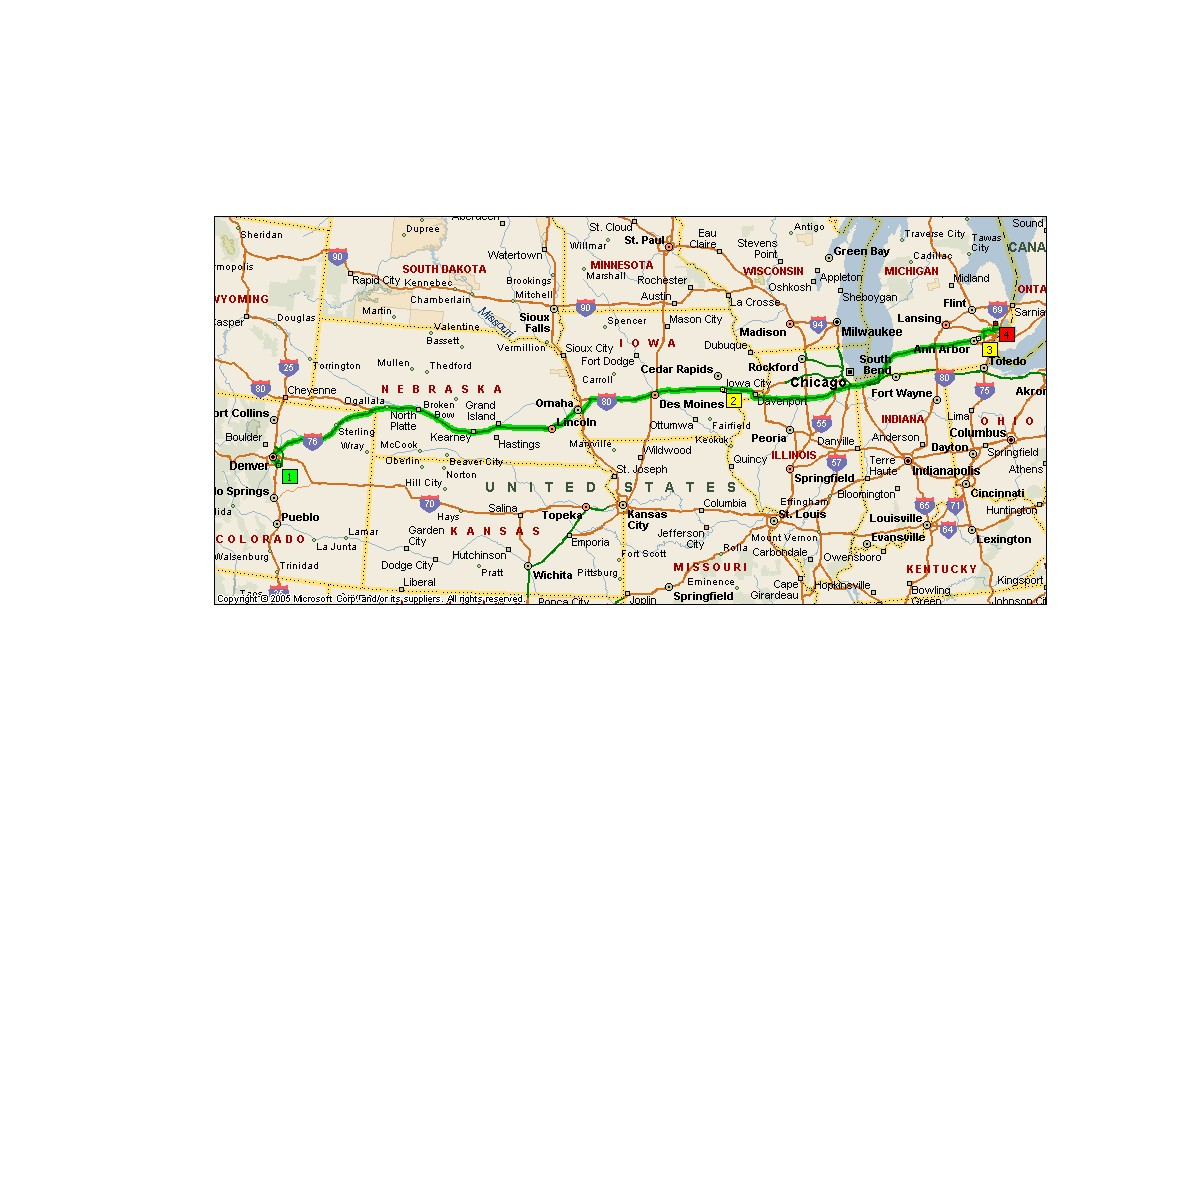 Click image for larger version  Name:I-80 trip.jpg Views:50 Size:202.6 KB ID:1053